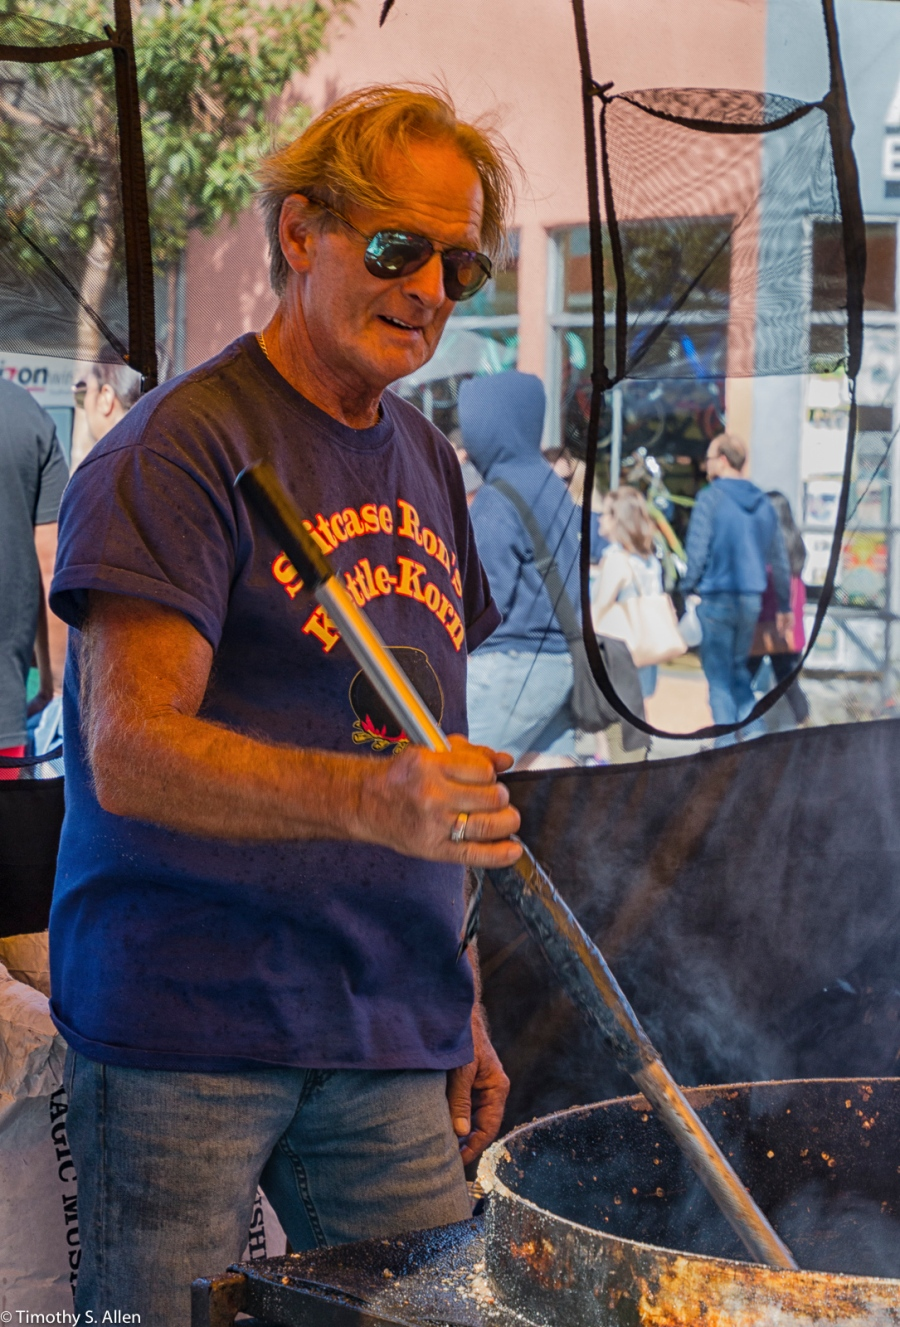 Suitcase Ron's Kettle-Korn Alameda's Park Street Fair Alameda California, U.S.A. July 31, 2016